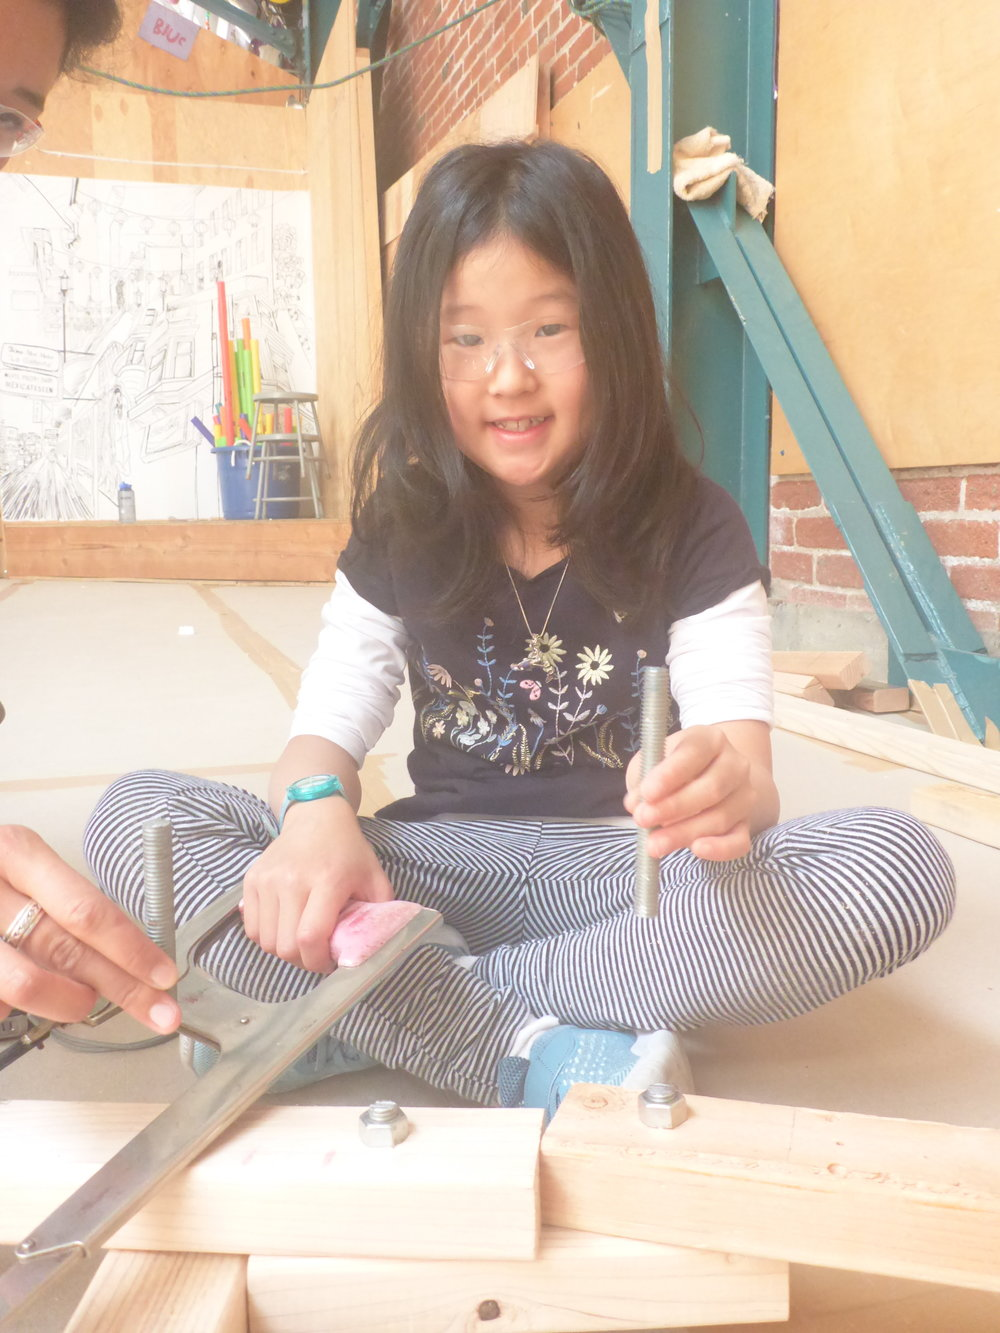 Sometimes hand tools do the trick! Ava shows off her work using a hacksaw :)